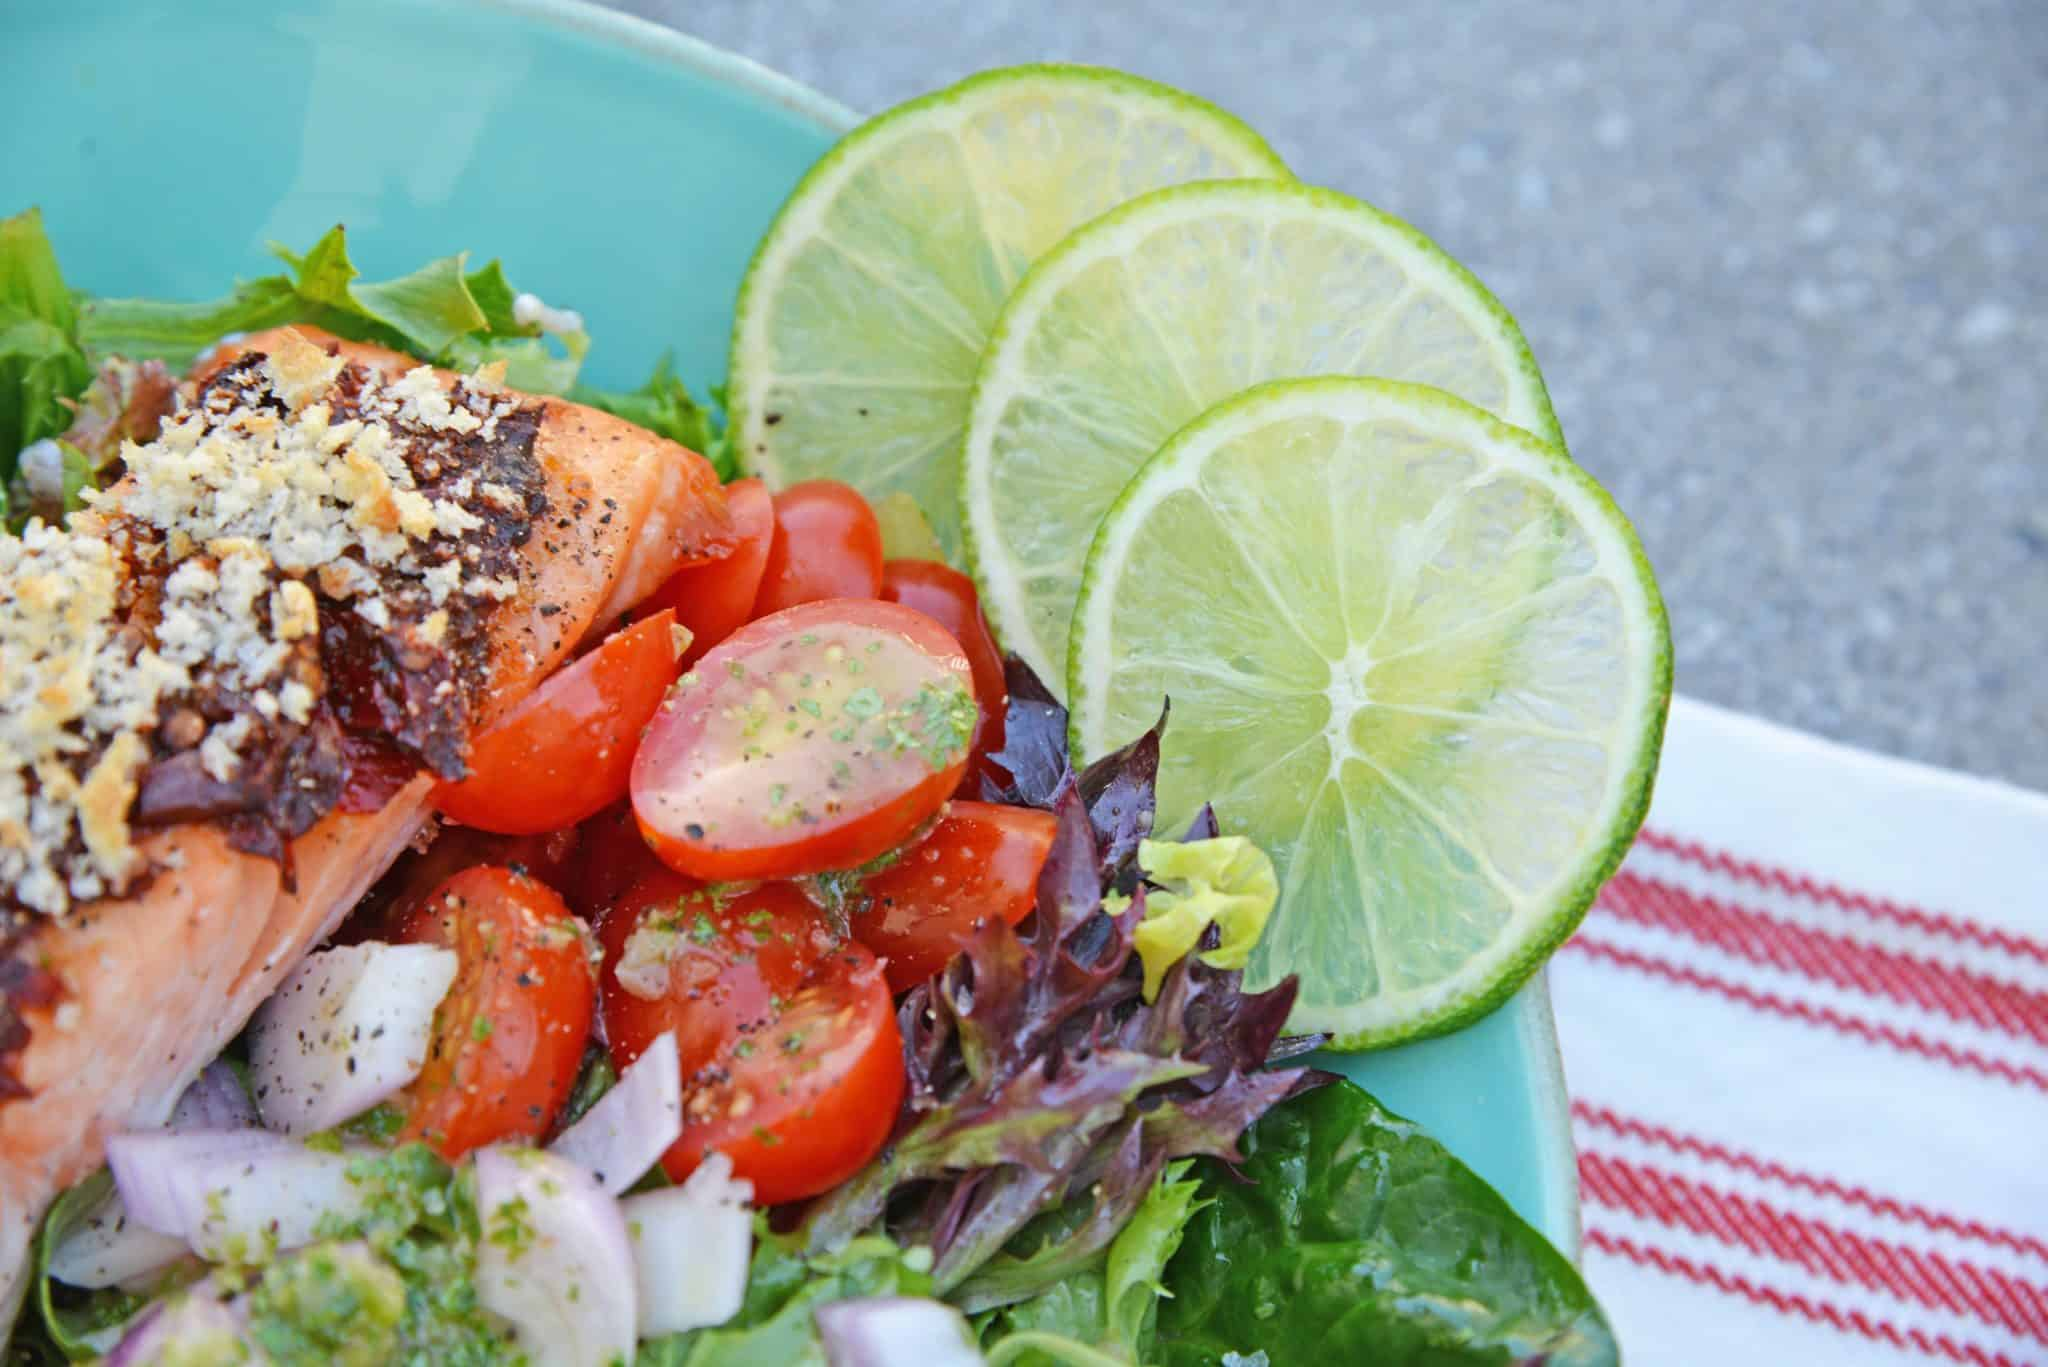 Crispy Chipotle Salmon Salad is a simple and healthy salad filled with a fun texture and spicy chipotle peppers. Top with Cilantro Lime Dressing. #salmonsaladrecipe #saladrecipes #bakedsalmonrecipe www.savoryexperiments.com